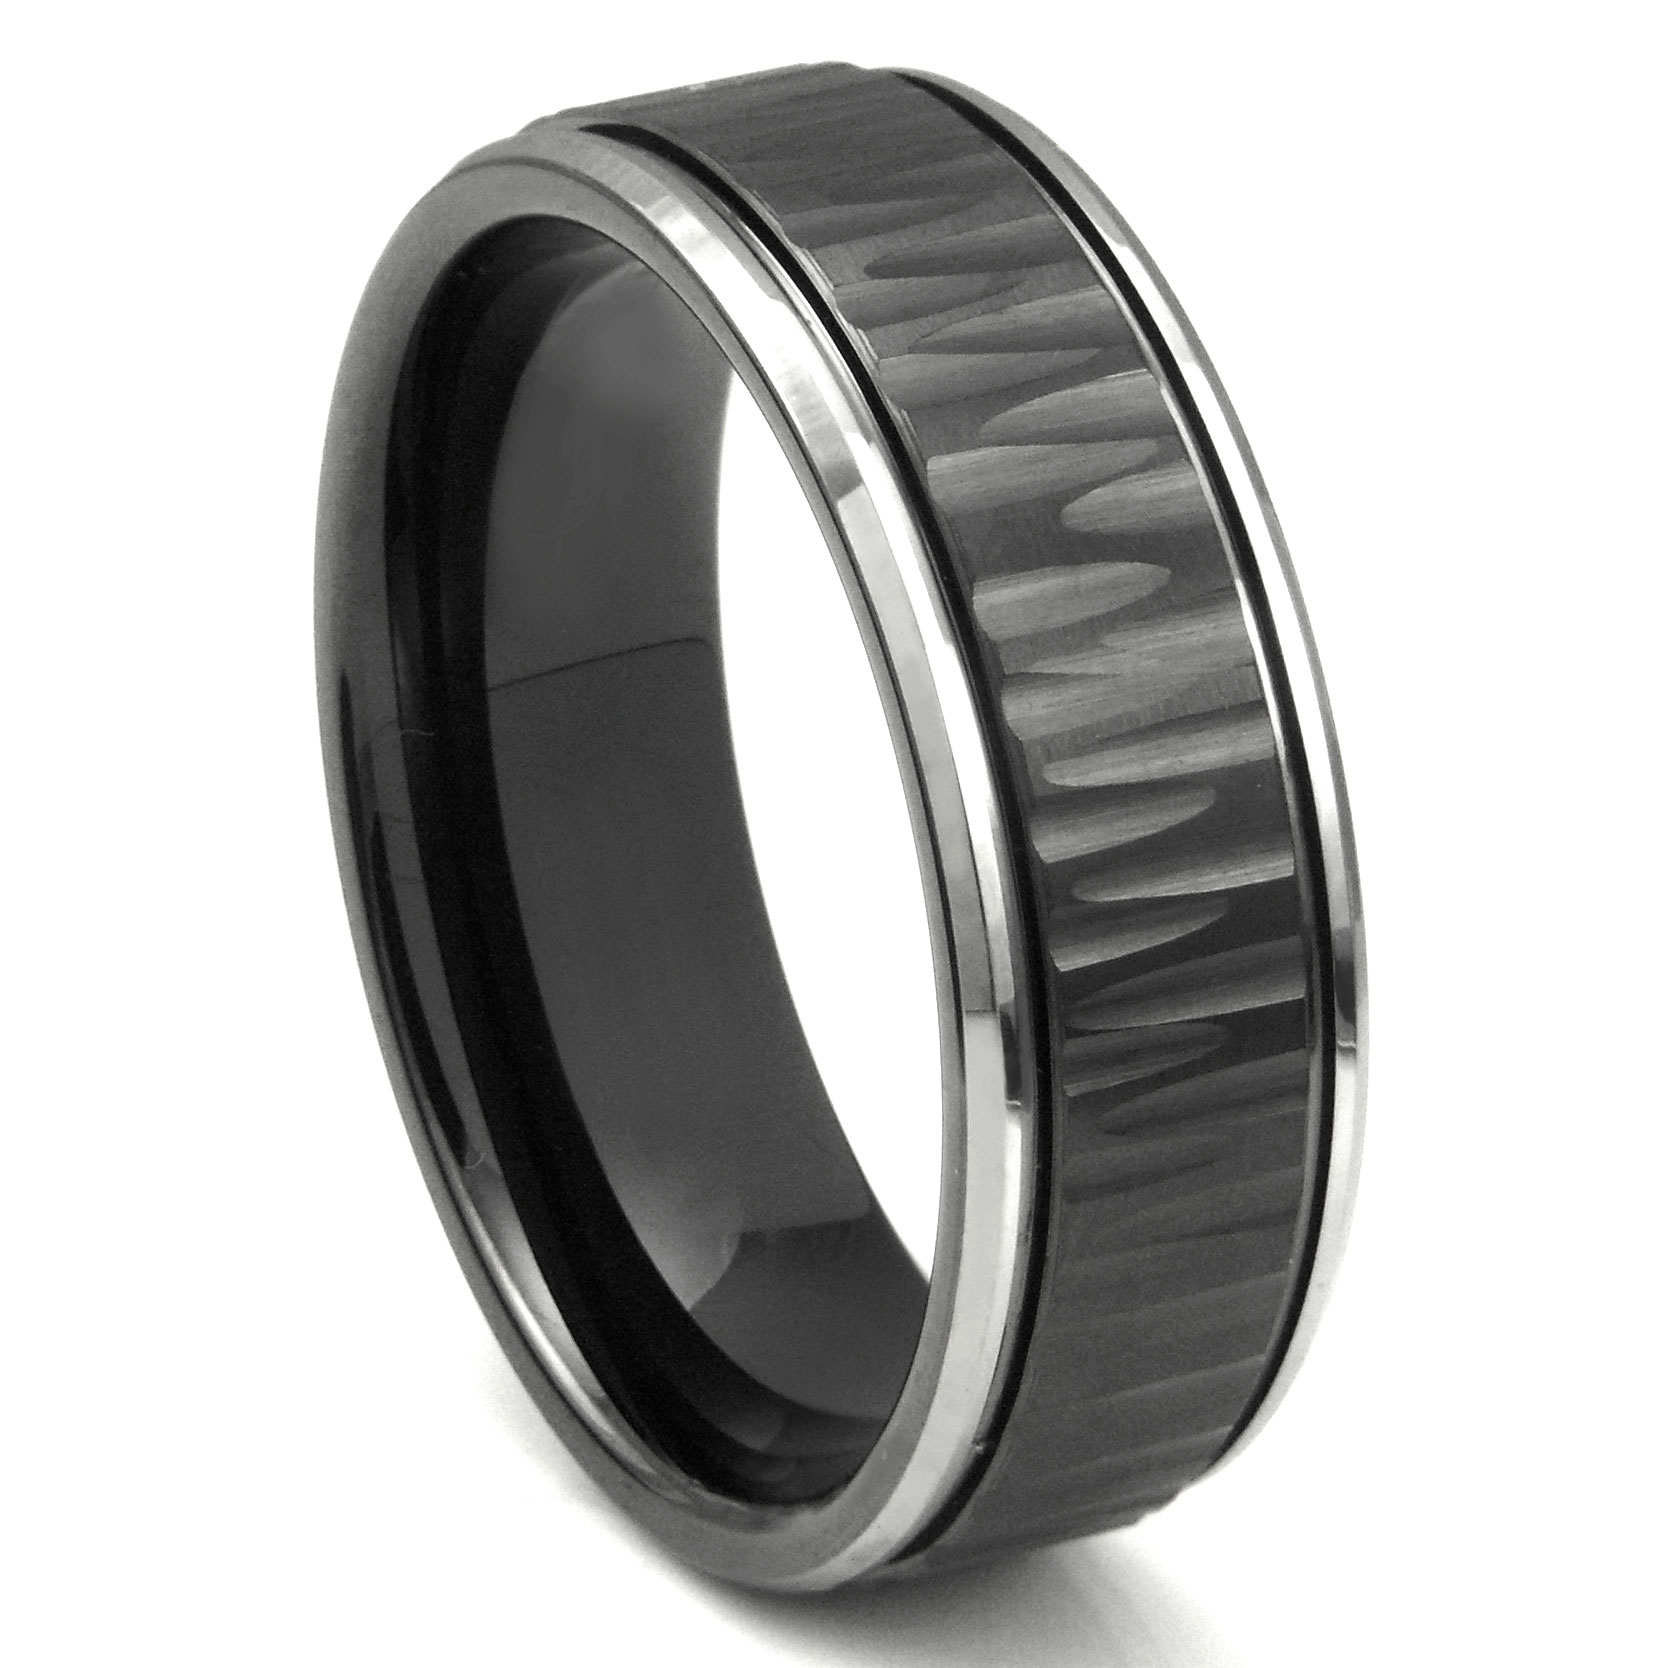 bands sterling band silver size men ring mens black jewelry braided pk bling